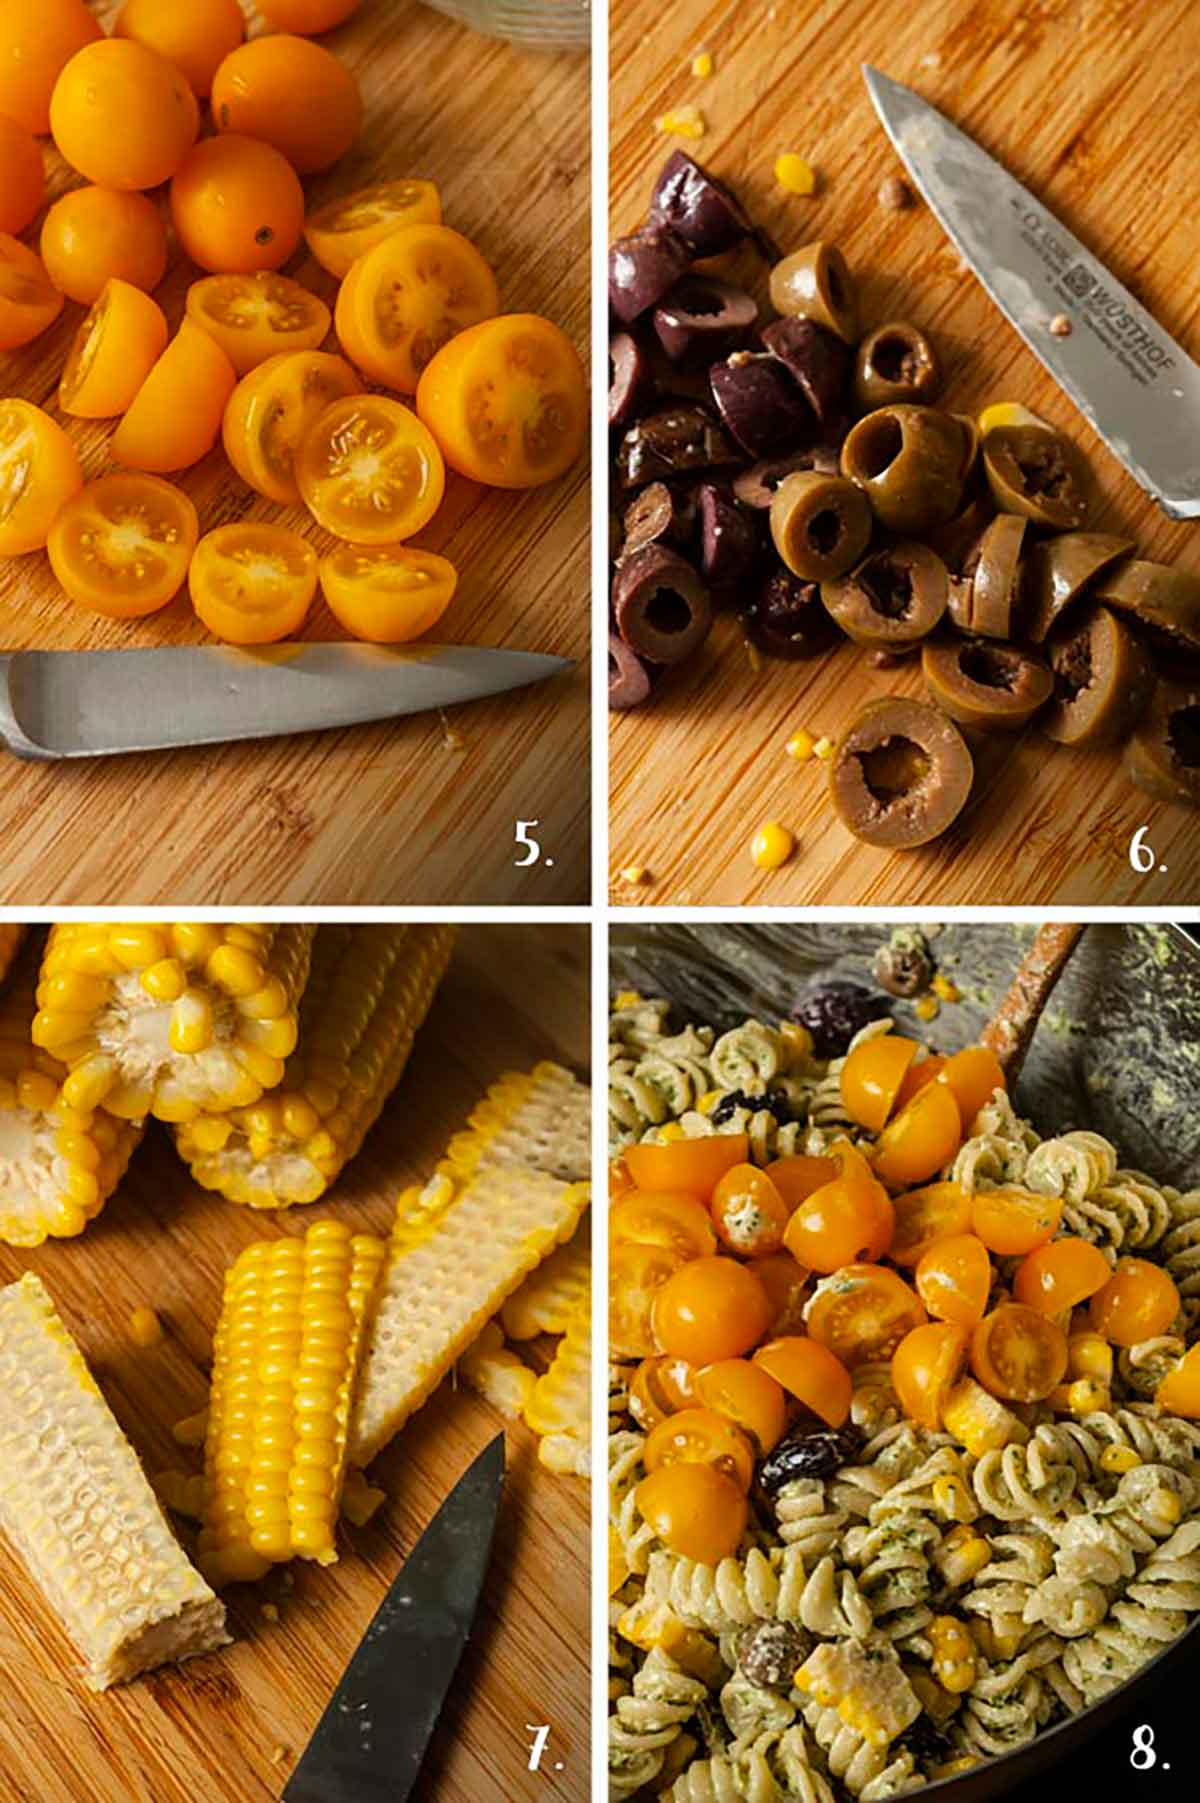 A collage of 4 numbered images showing how to slice vegetables for pasta salad.